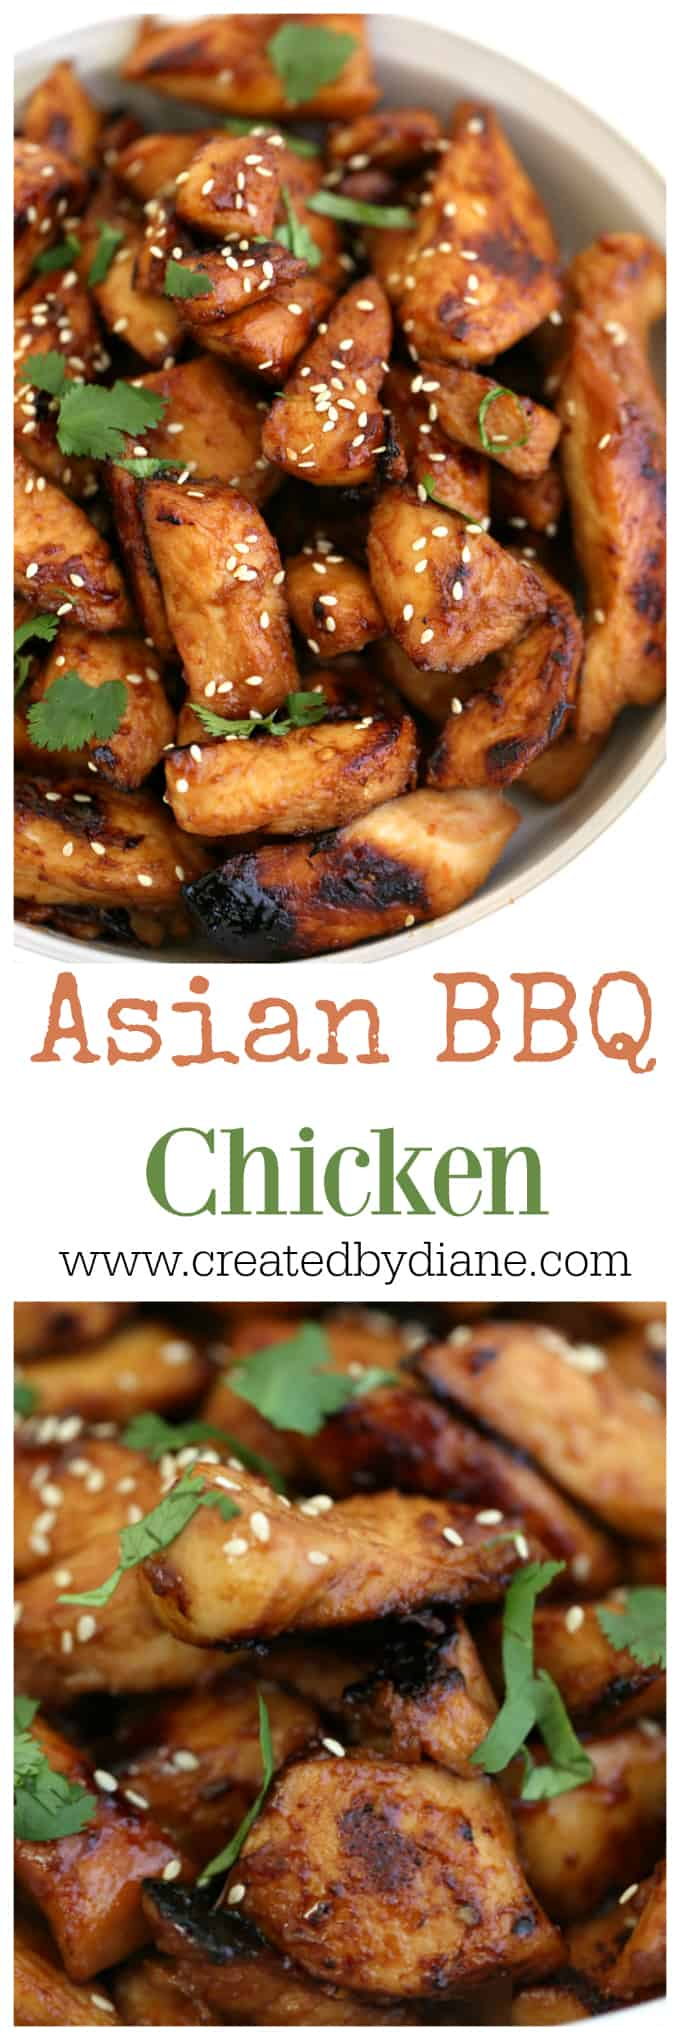 Asian BBQ Chicken recipe www.createdbydiane.com